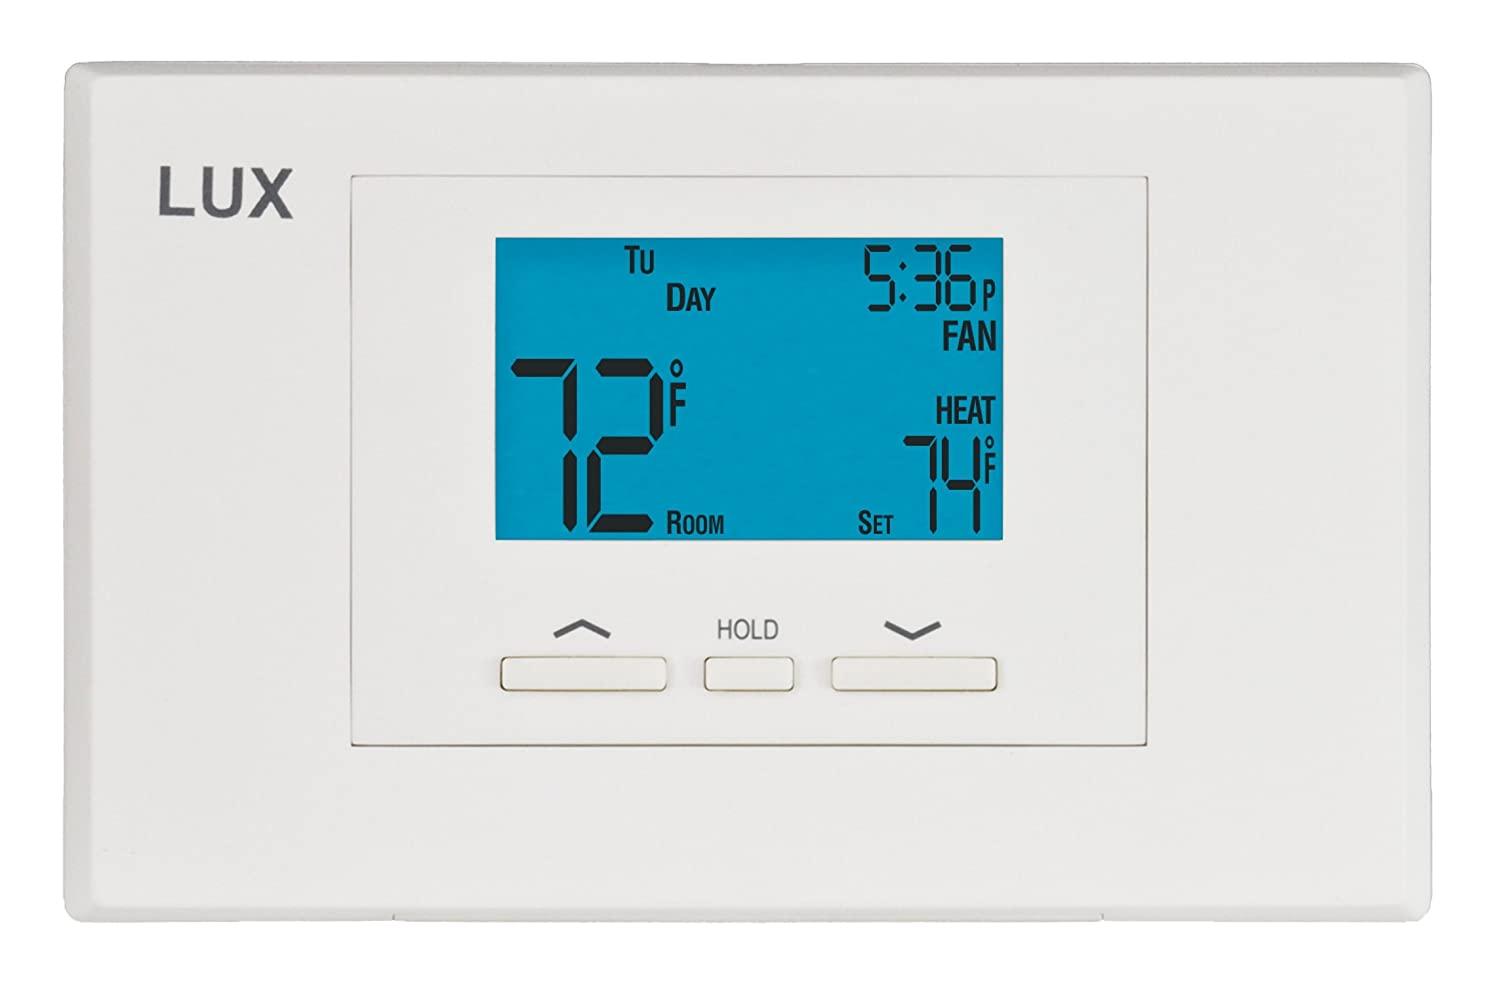 71F3SaGBLOL._SL1500_ lux products tx500u universal 5 2 programmable thermostat  at soozxer.org